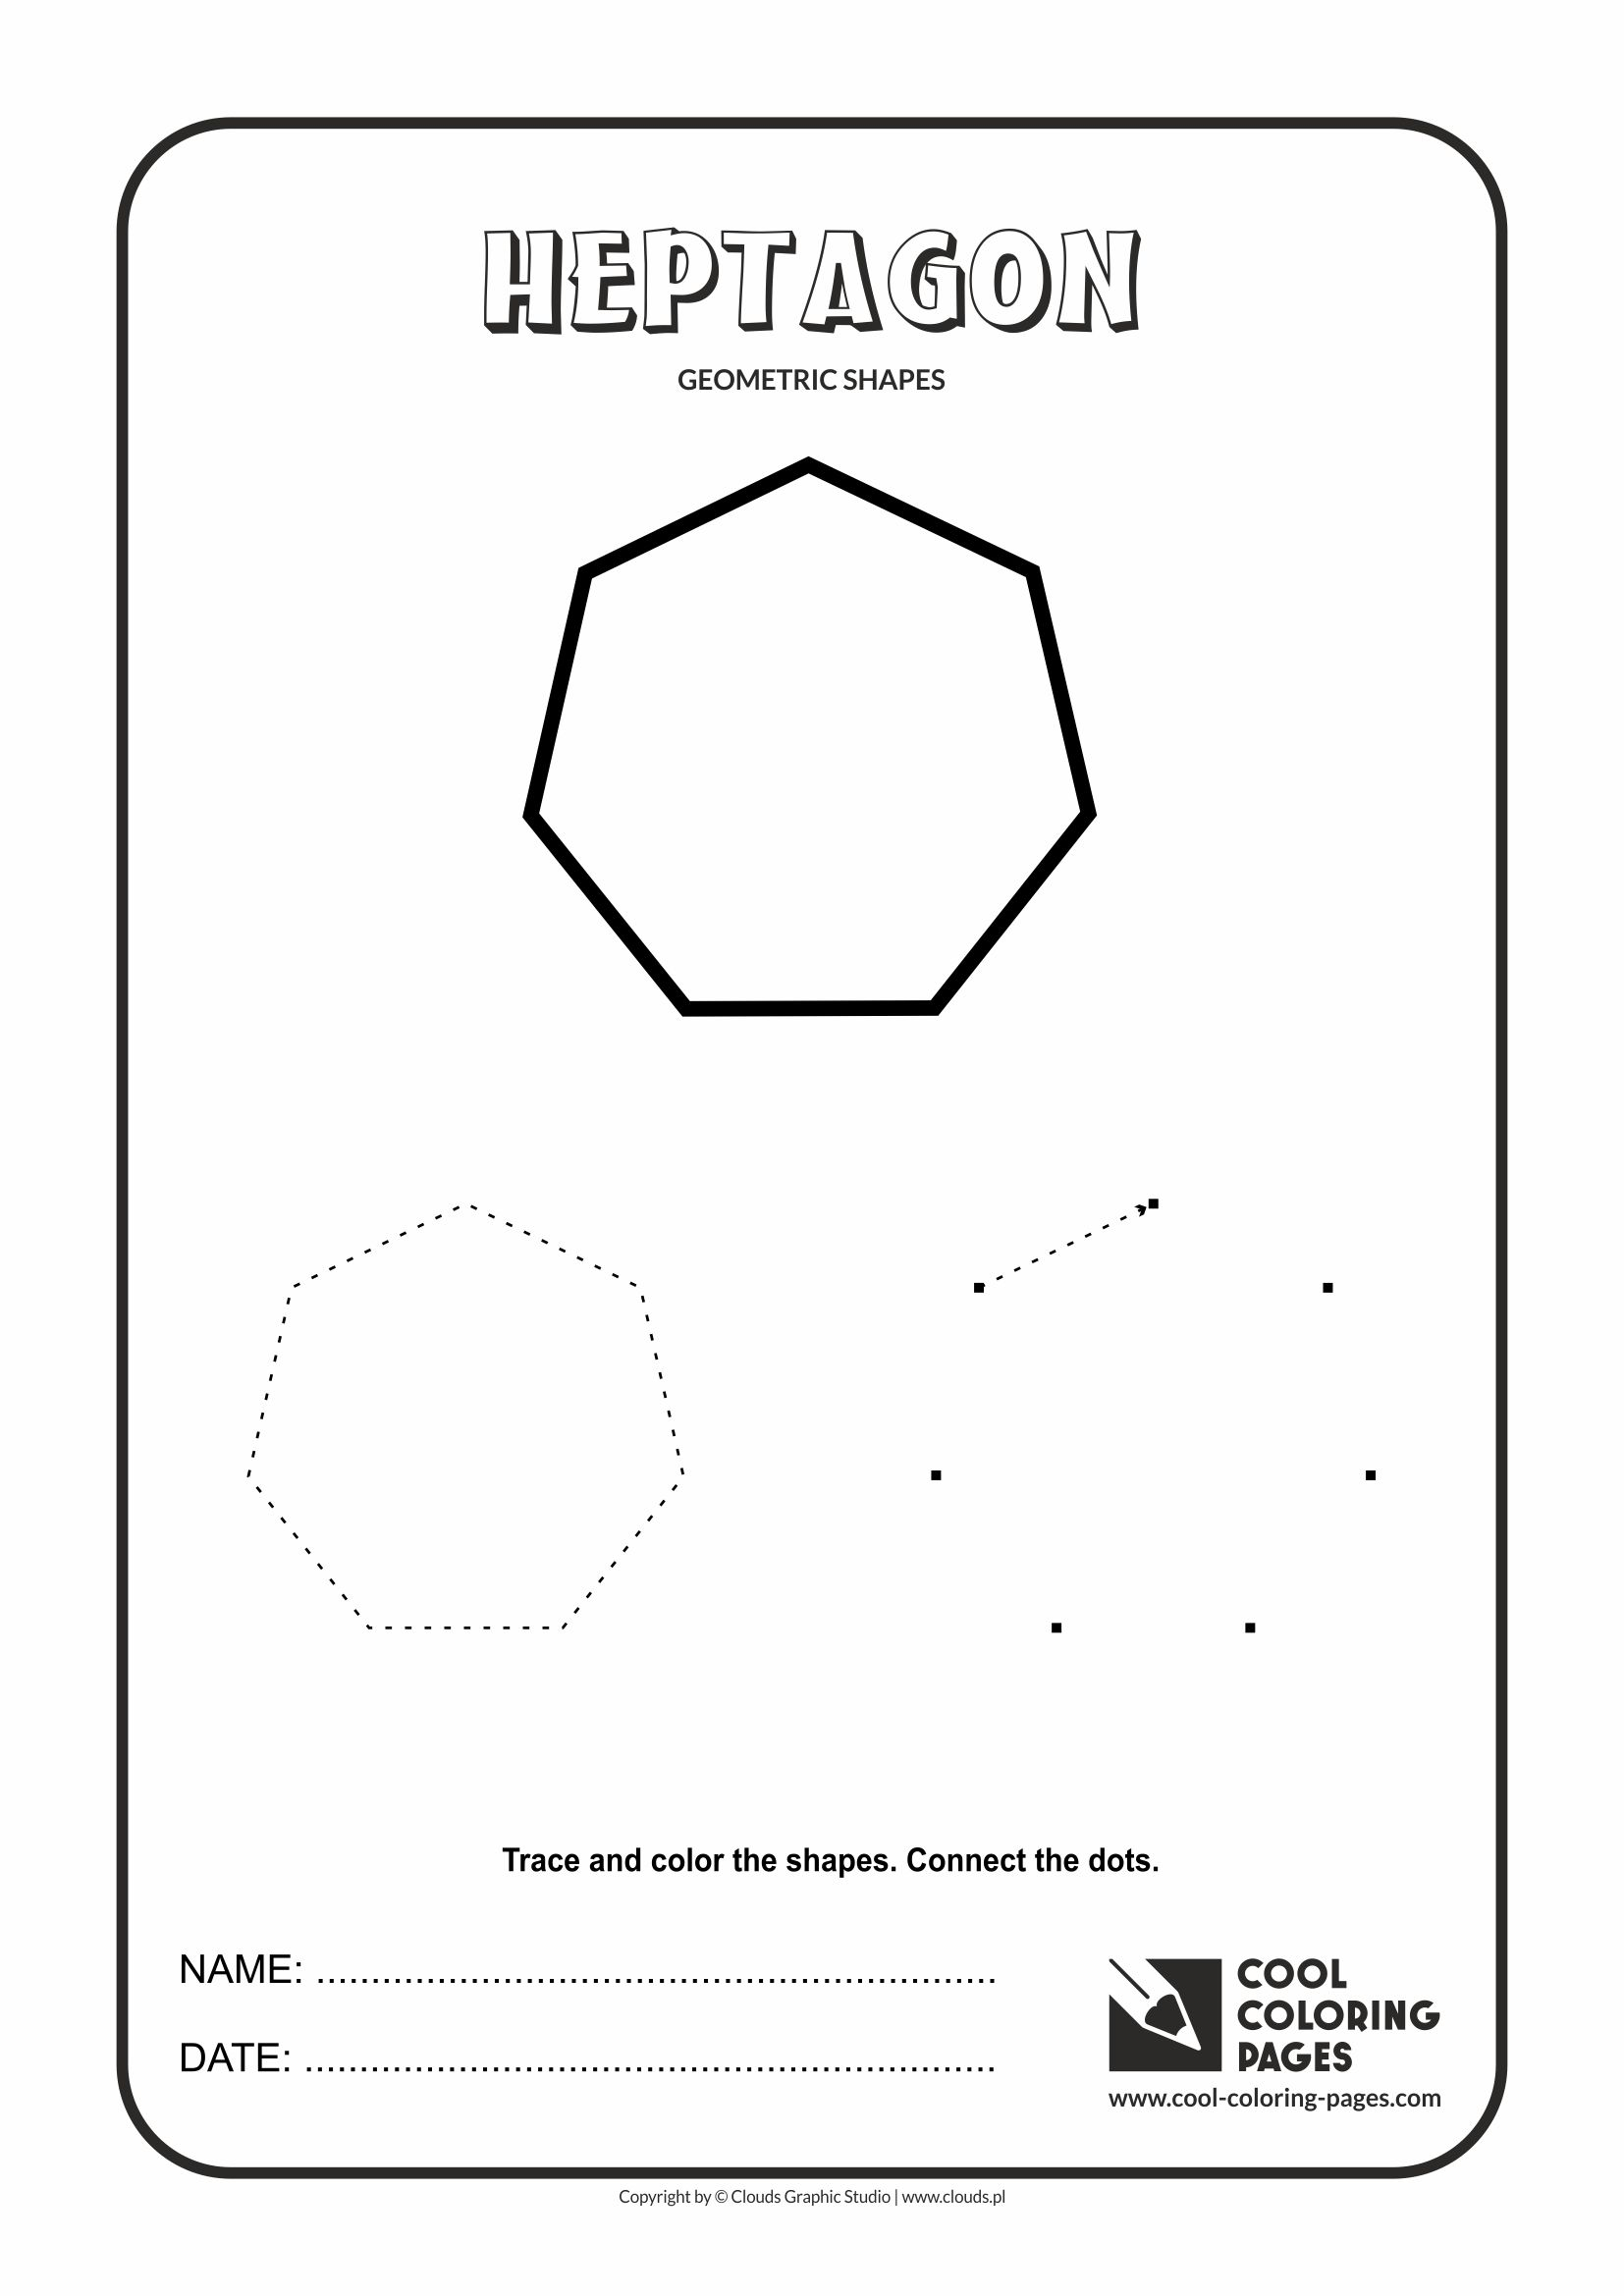 Cool Coloring Pages - Geometric shapes / Heptagon